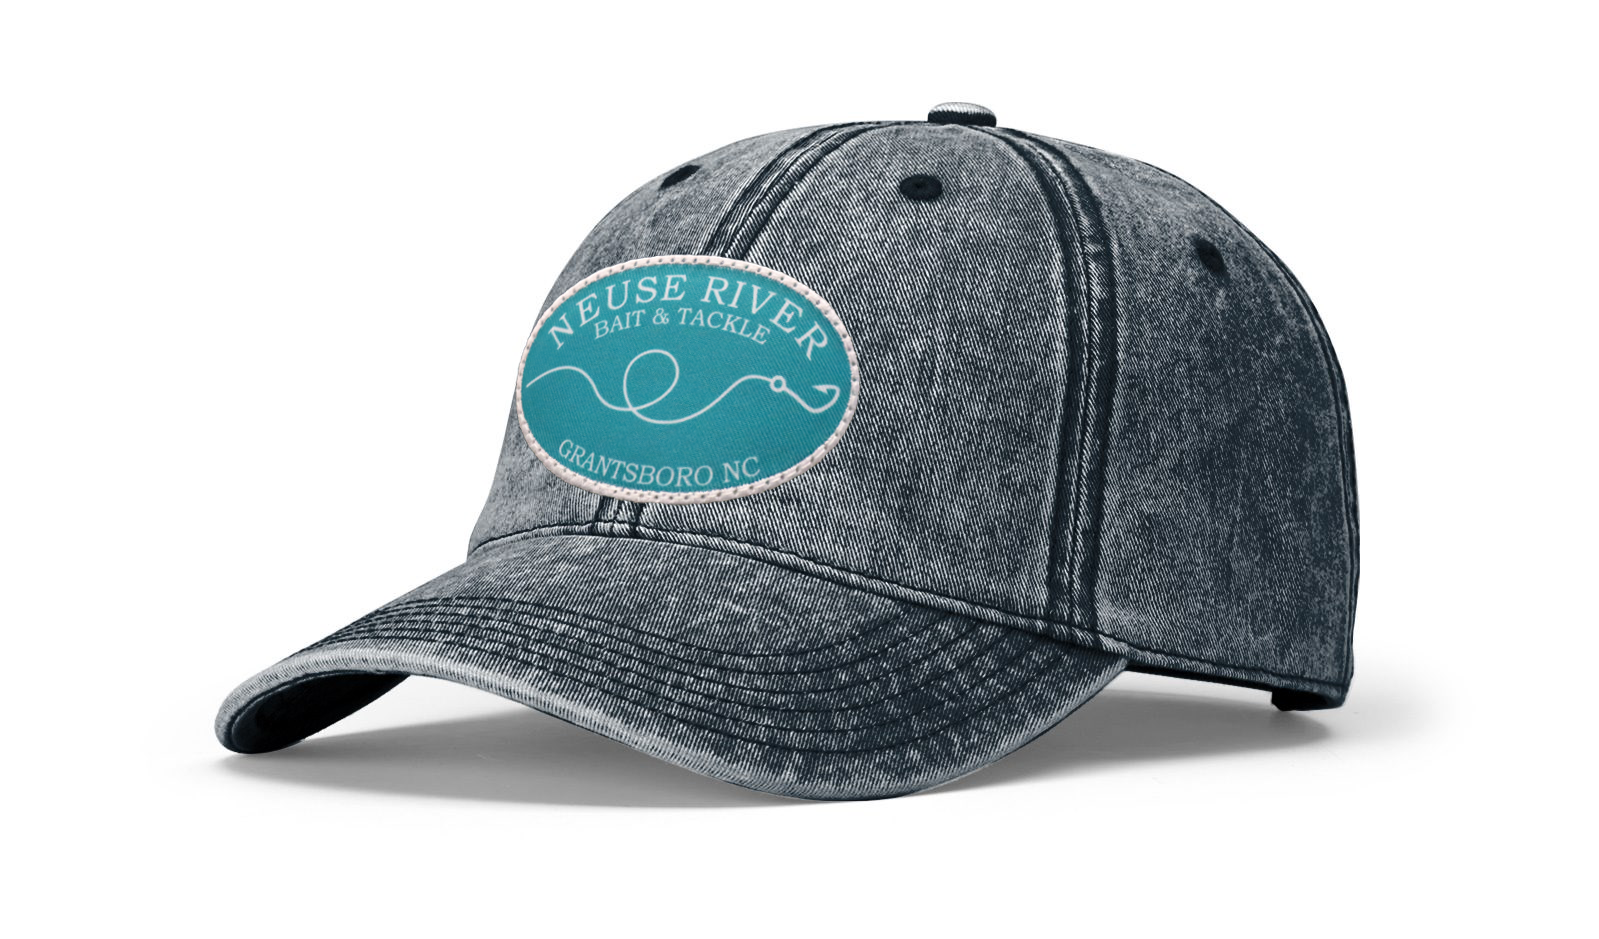 Hook & Line Patch Snow Washed Hat